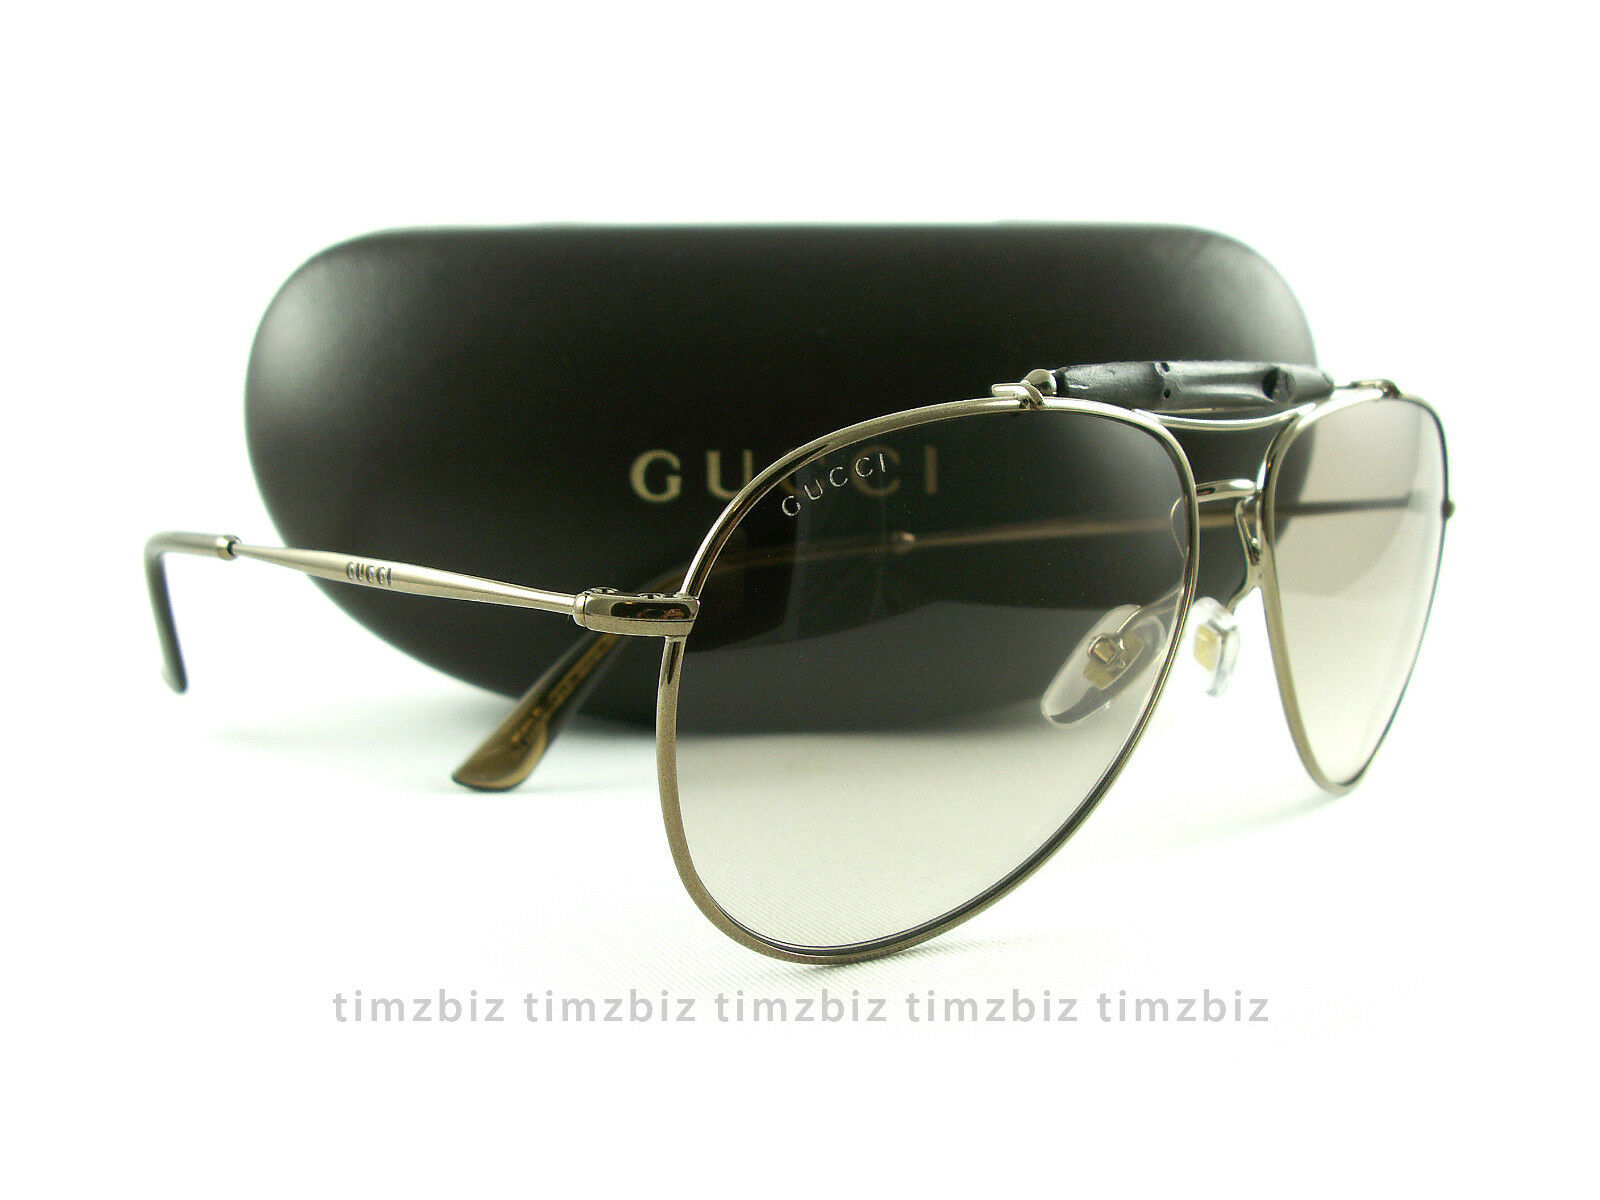 122d4856c02b7 Gucci Sunglasses GG 2235 s 1jflp Brown Bamboo Aviator Authentic for ...